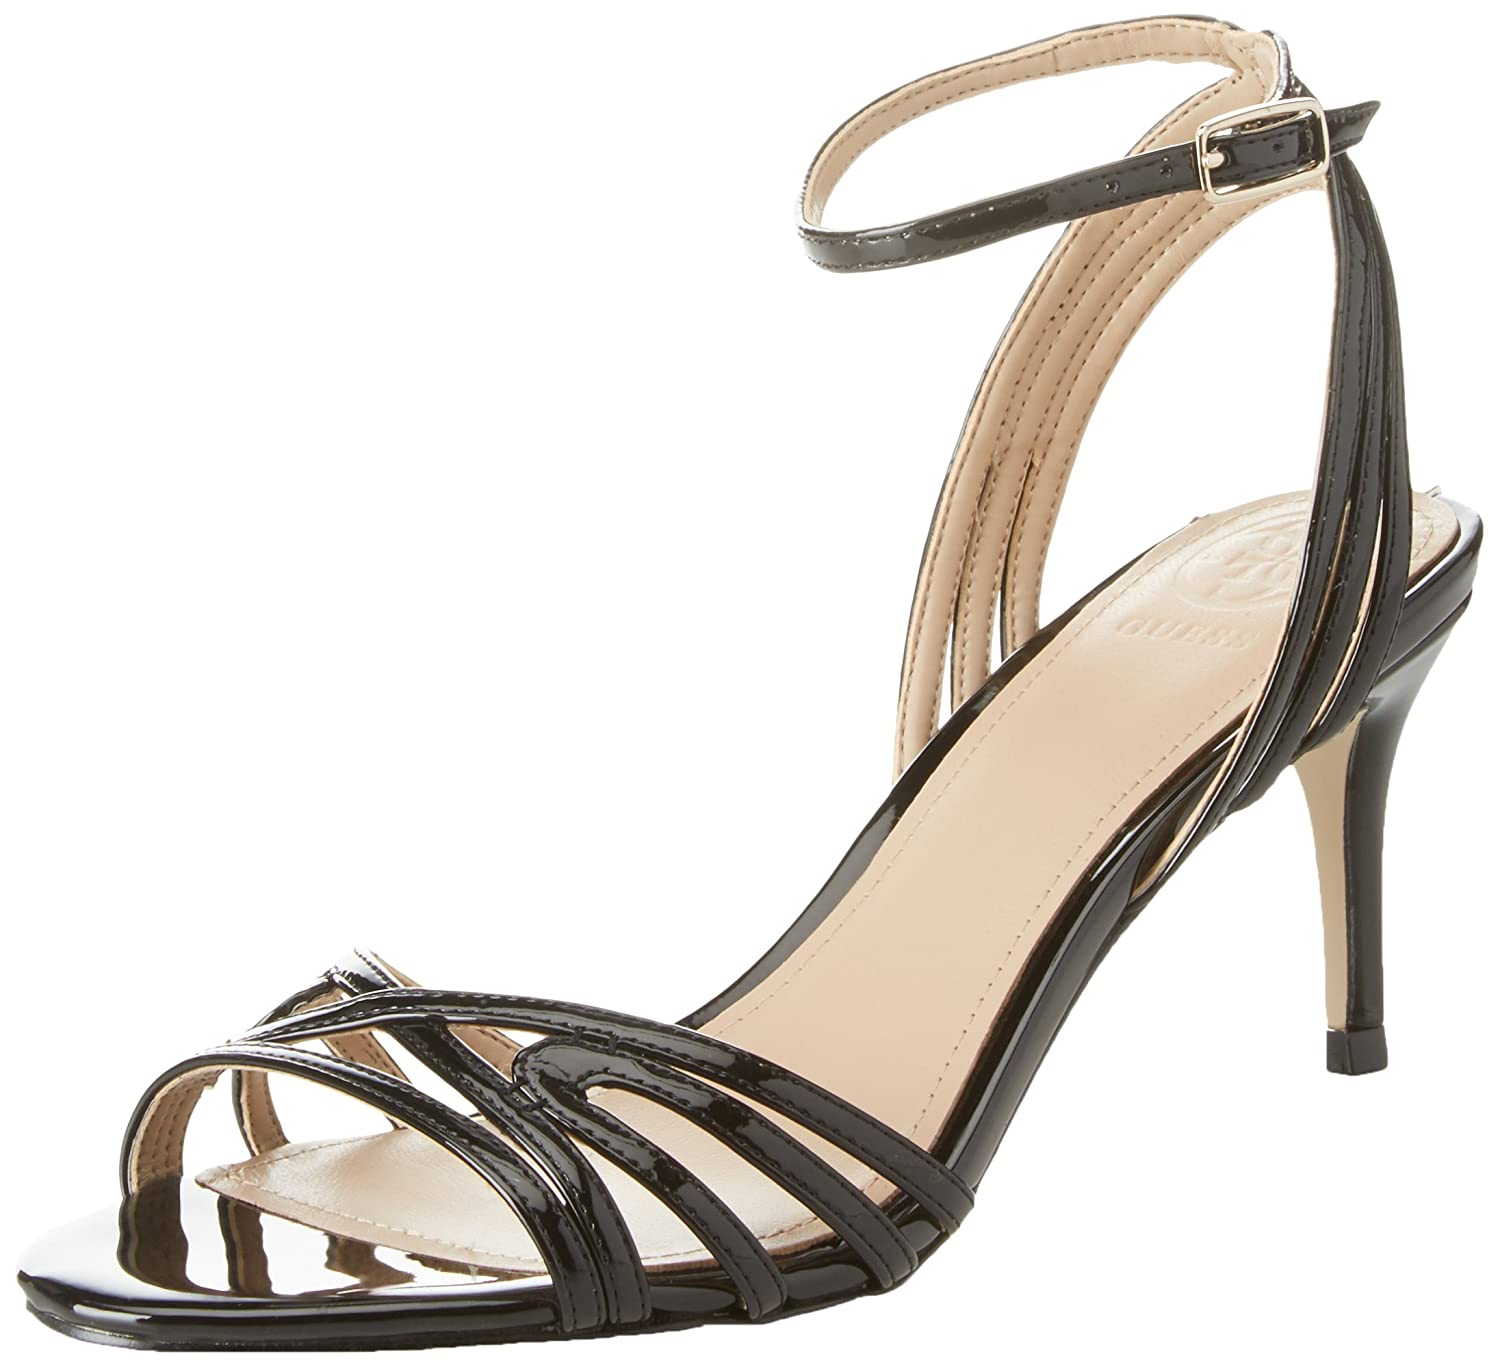 Guess B073XJ3937 Footwear Dress Sandal, Escarpins Dress Bride Black) Cheville Femme, Noir Noir (Black Black) 77c8a4d - latesttechnology.space